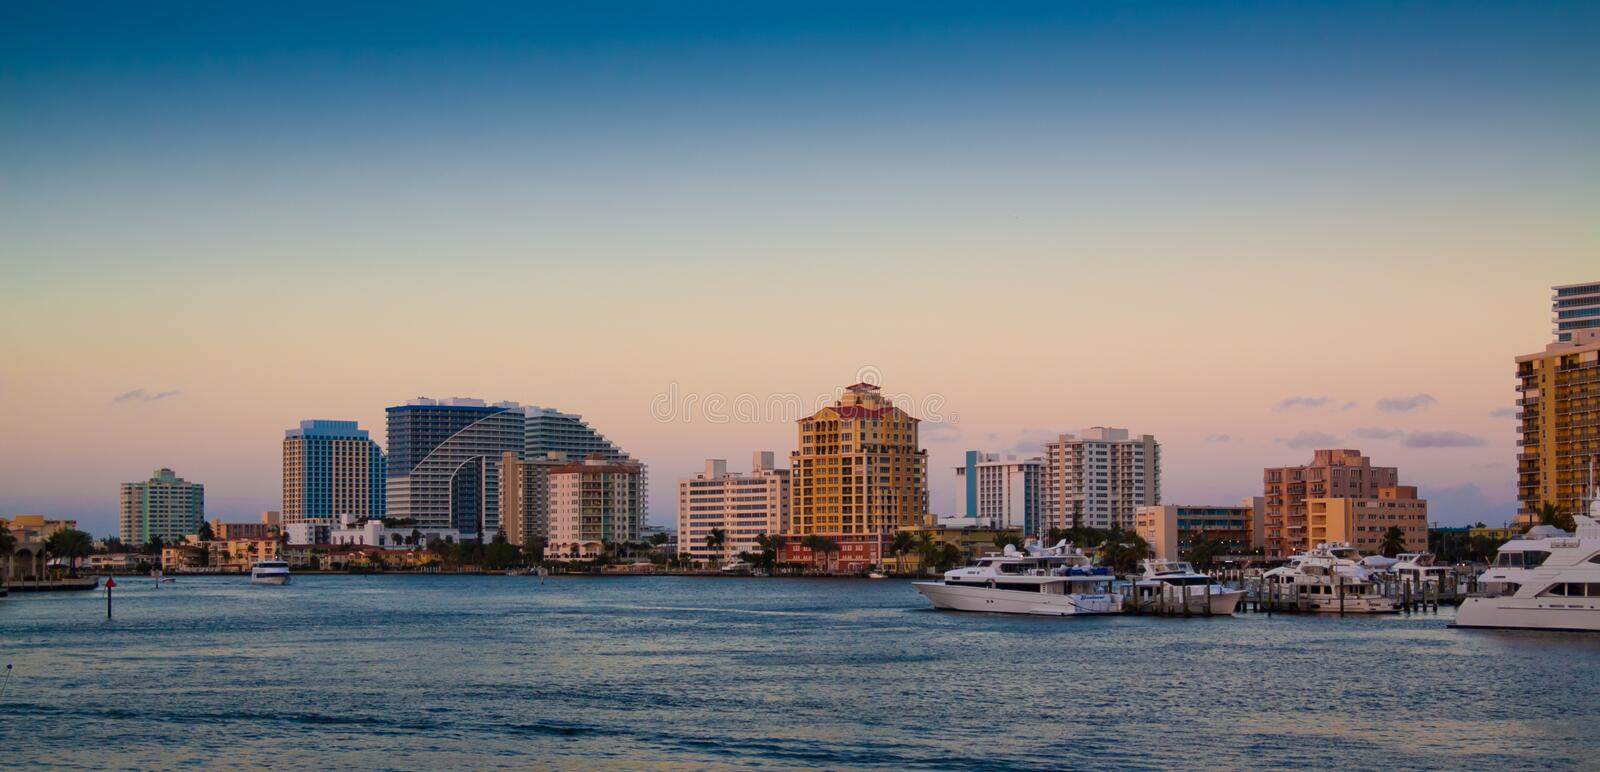 Fort Lauderdale after sunset stock image